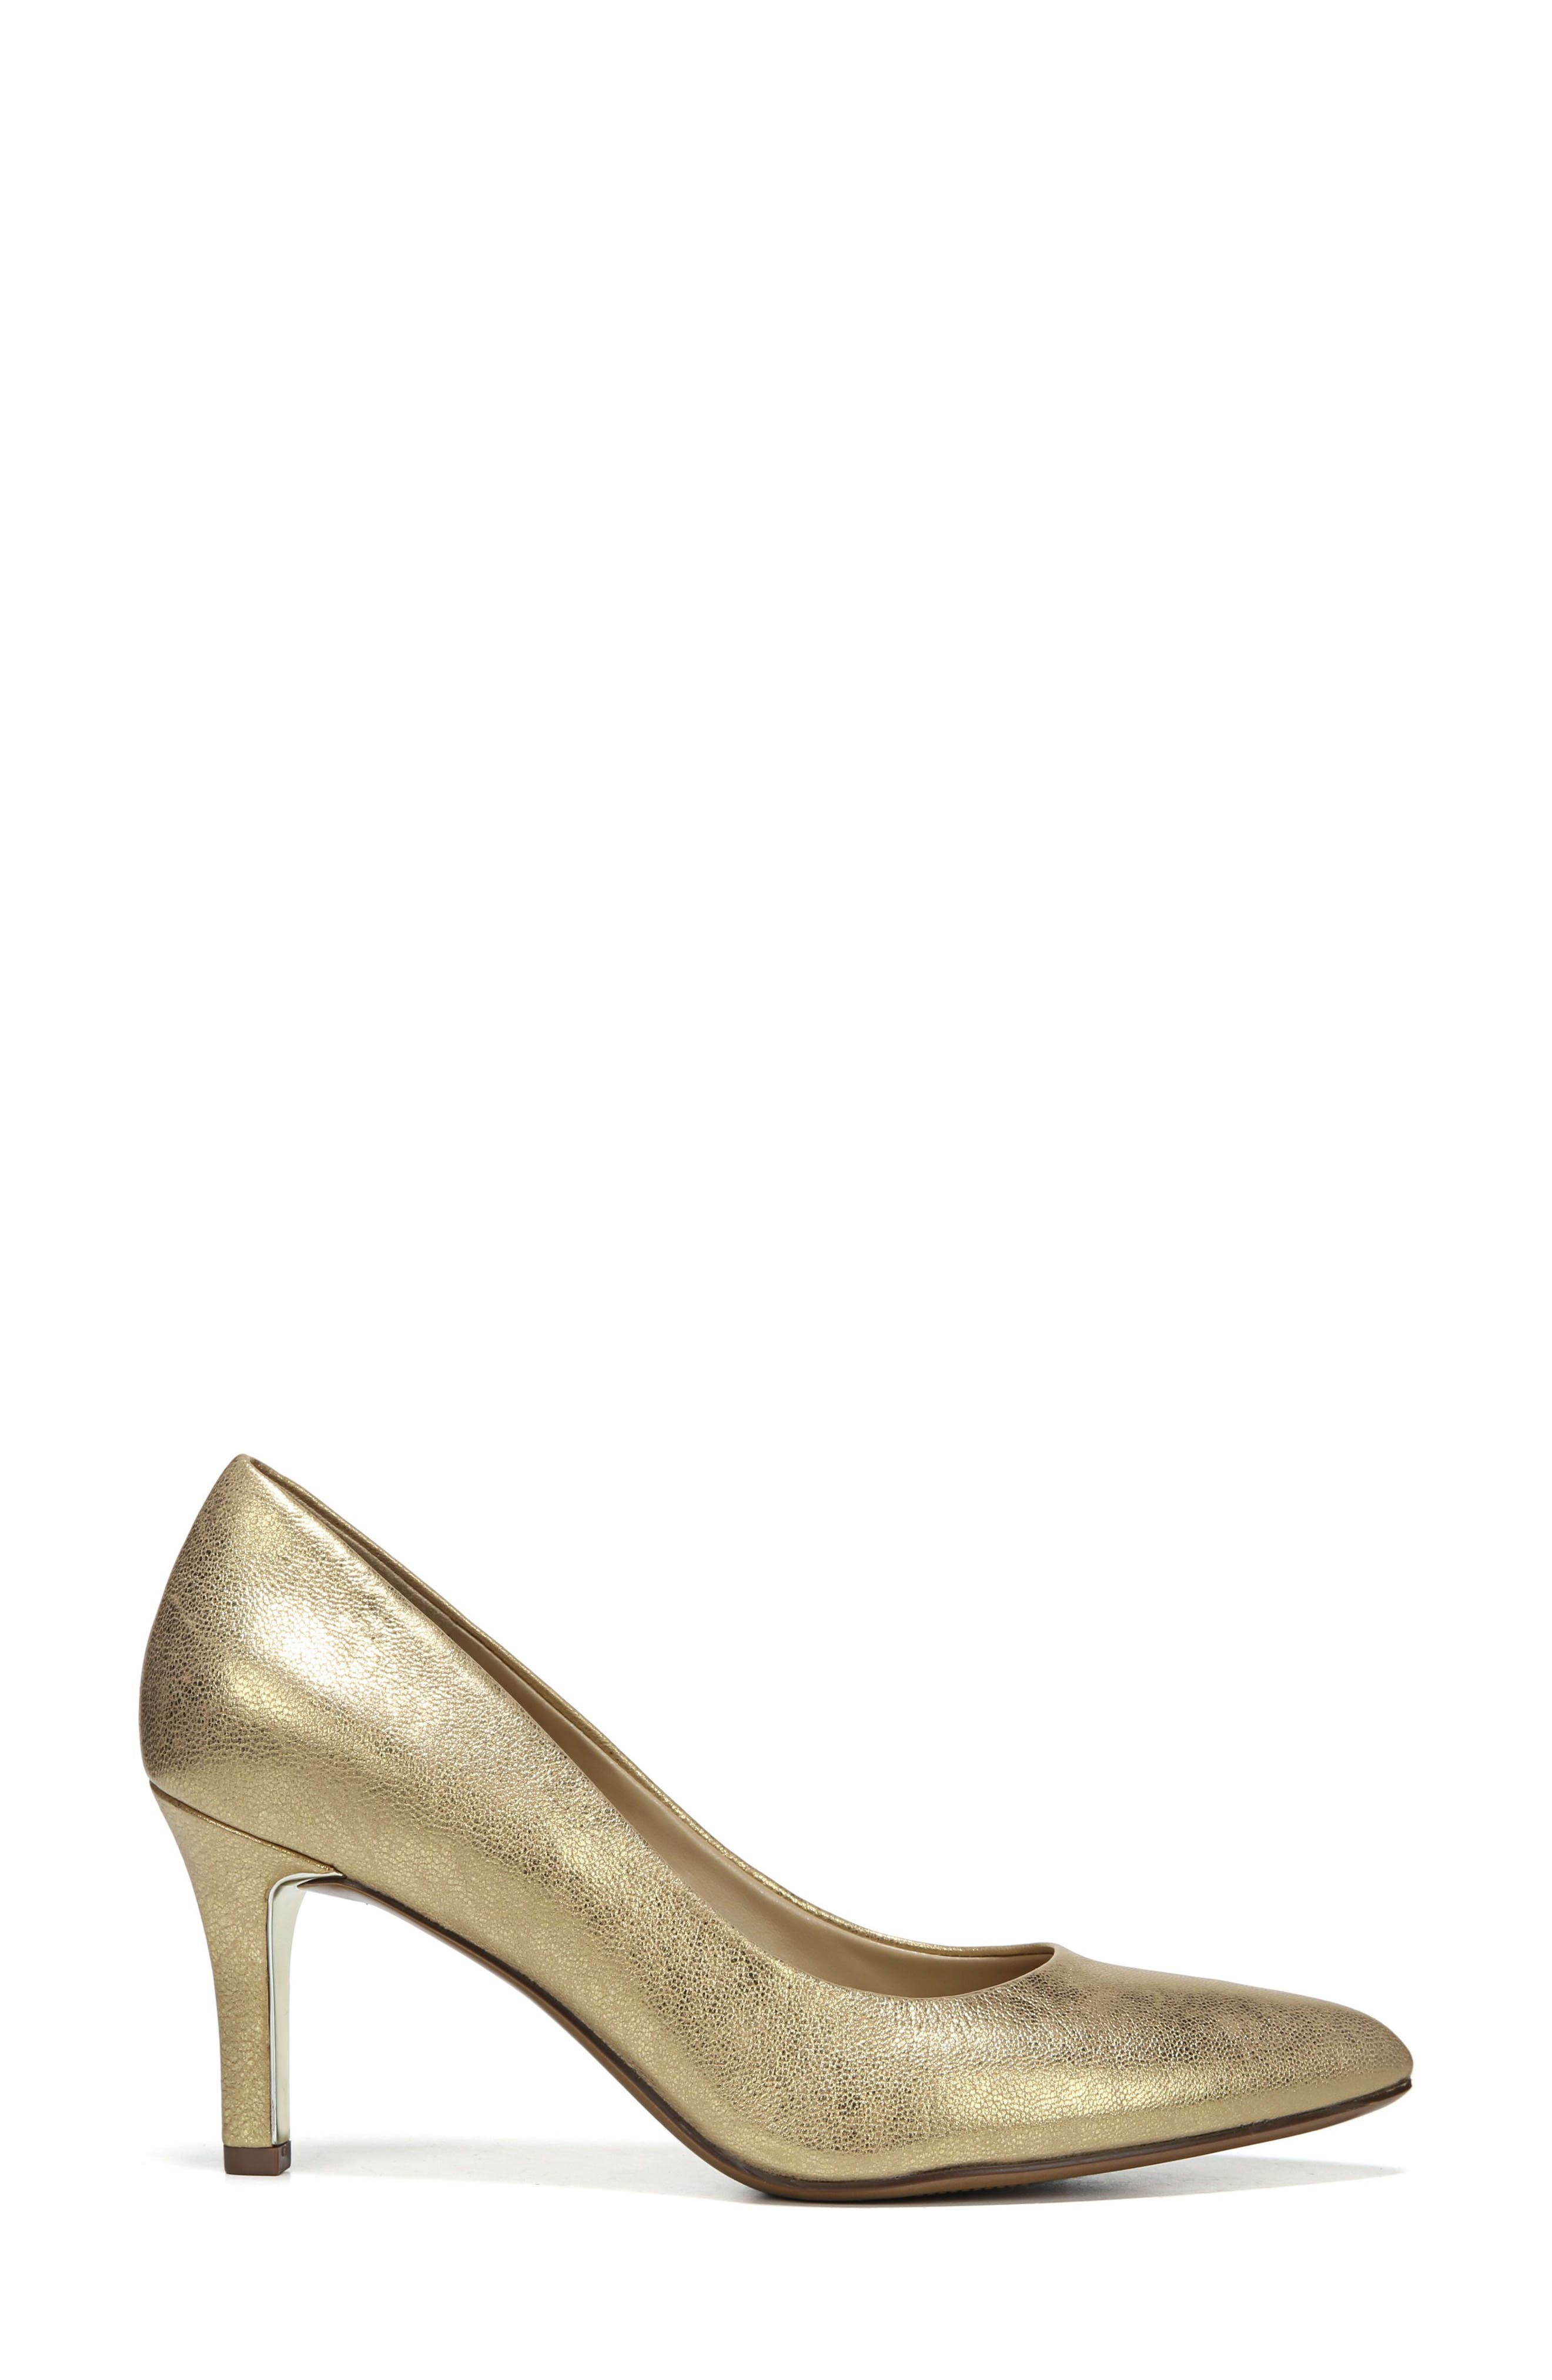 NATURALIZER, Natalie Pointy Toe Pump, Alternate thumbnail 3, color, GOLD LEATHER